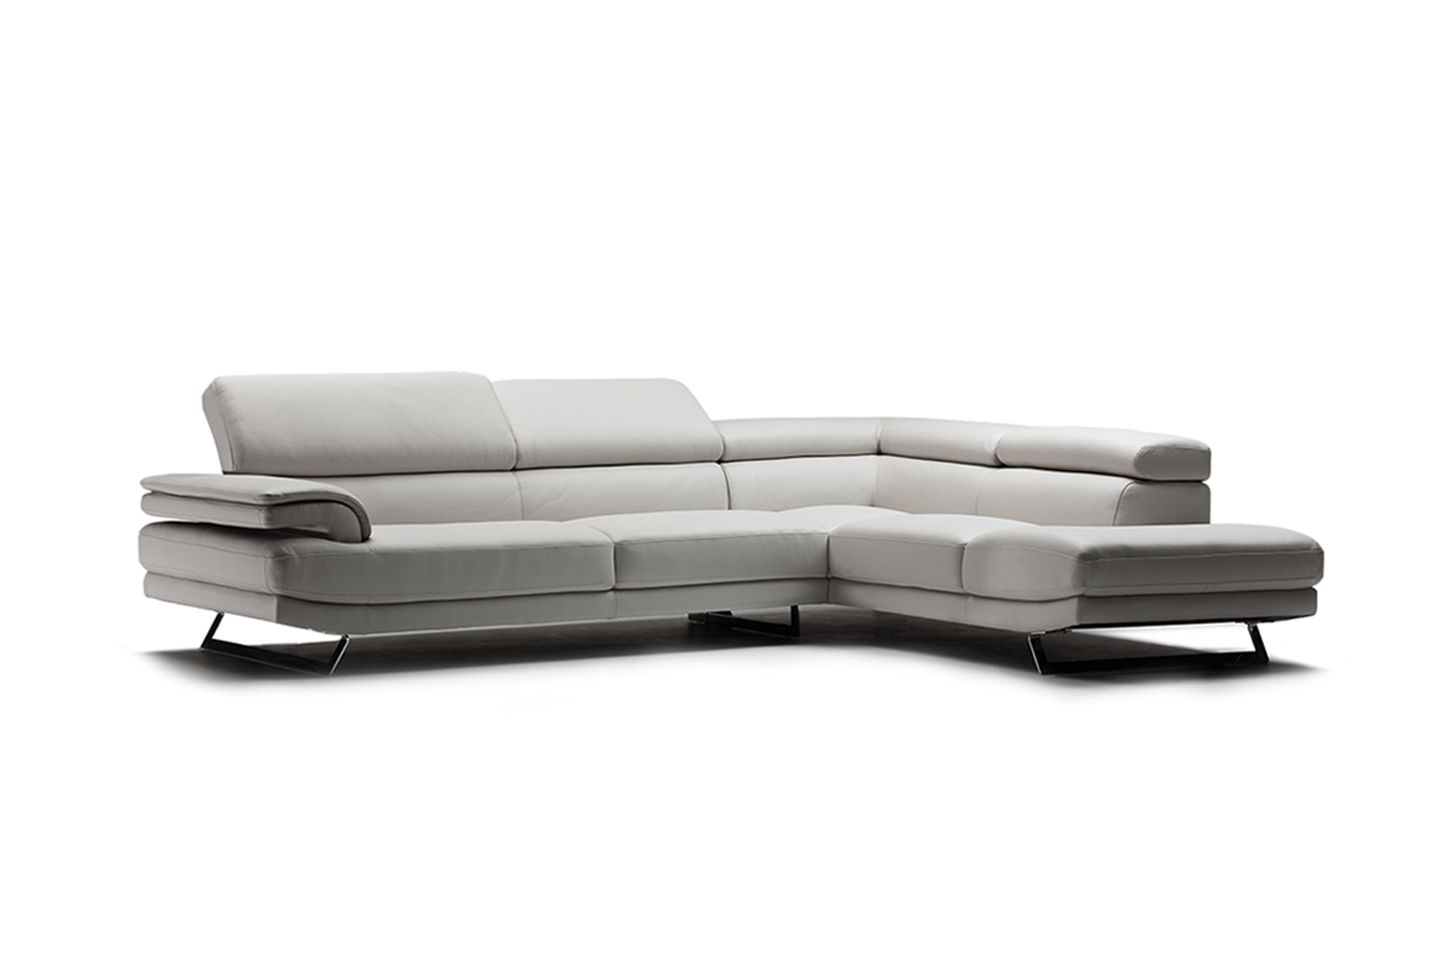 Incredible Nicoline Astor Sectional Sofa 122 X 92 Available In Left Uwap Interior Chair Design Uwaporg